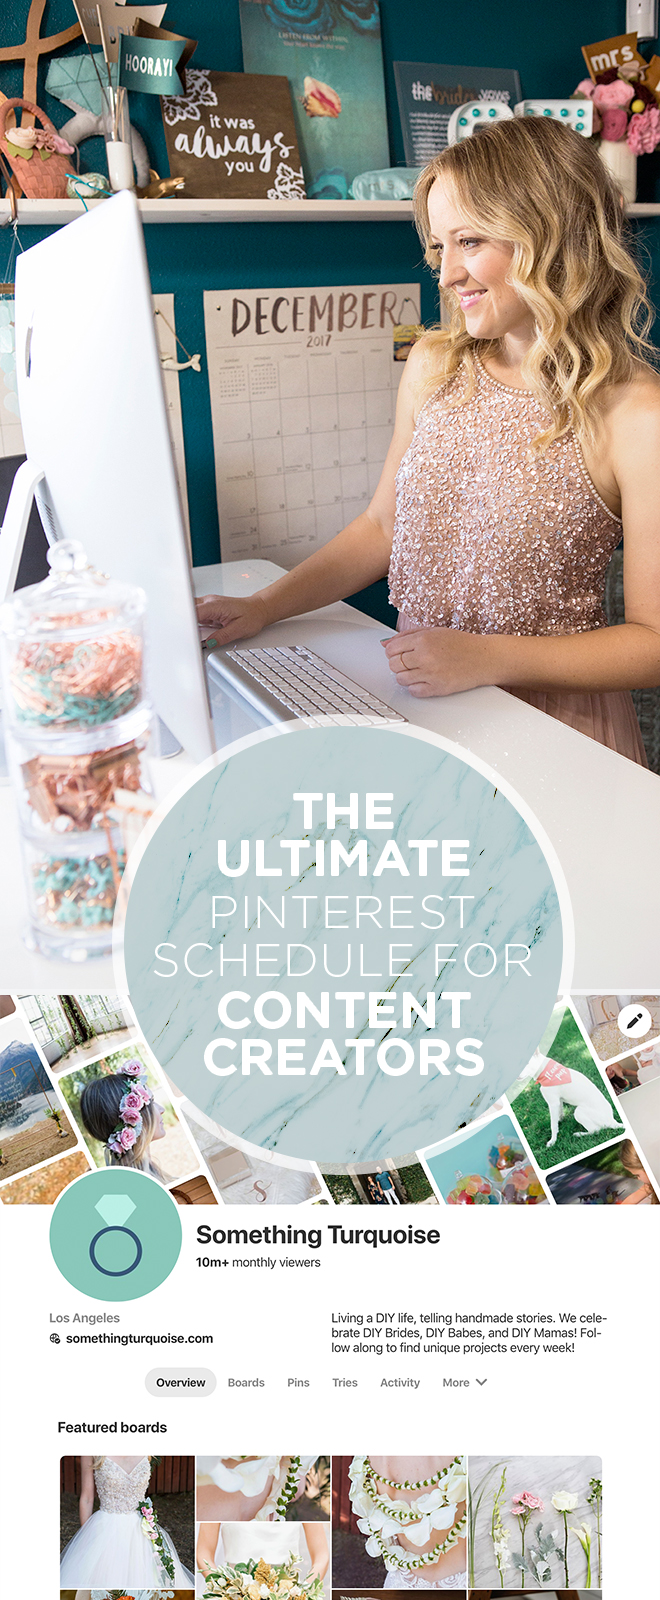 Our Ultimate Pinterest Pinning Schedule (and advice) for content creators!